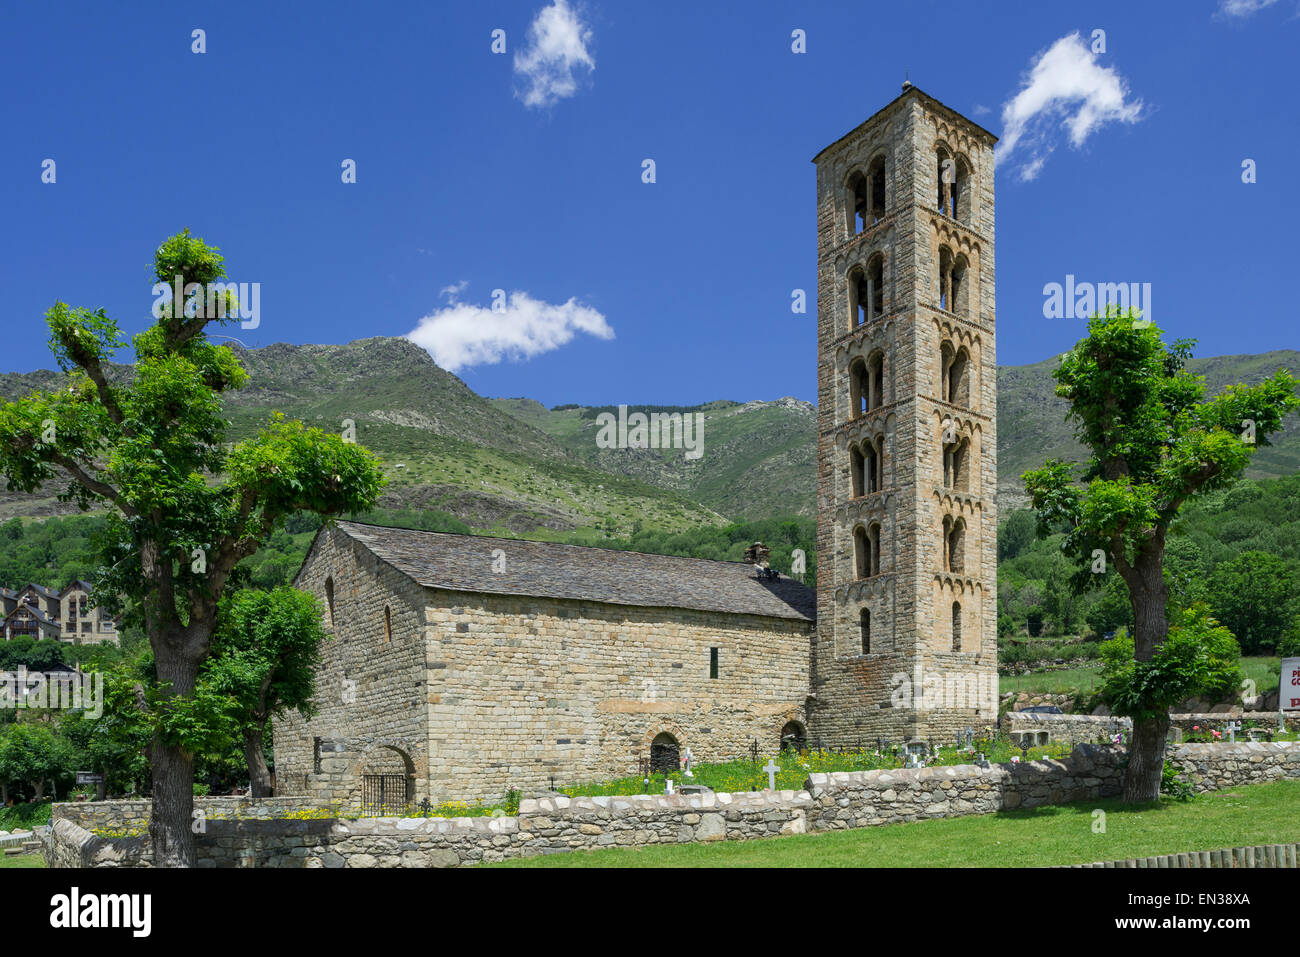 Romanesque church of Sant Climent de Taüll, Unesco World Heritage Site, Vall de Boí, Taüll, Catalonia, - Stock Image